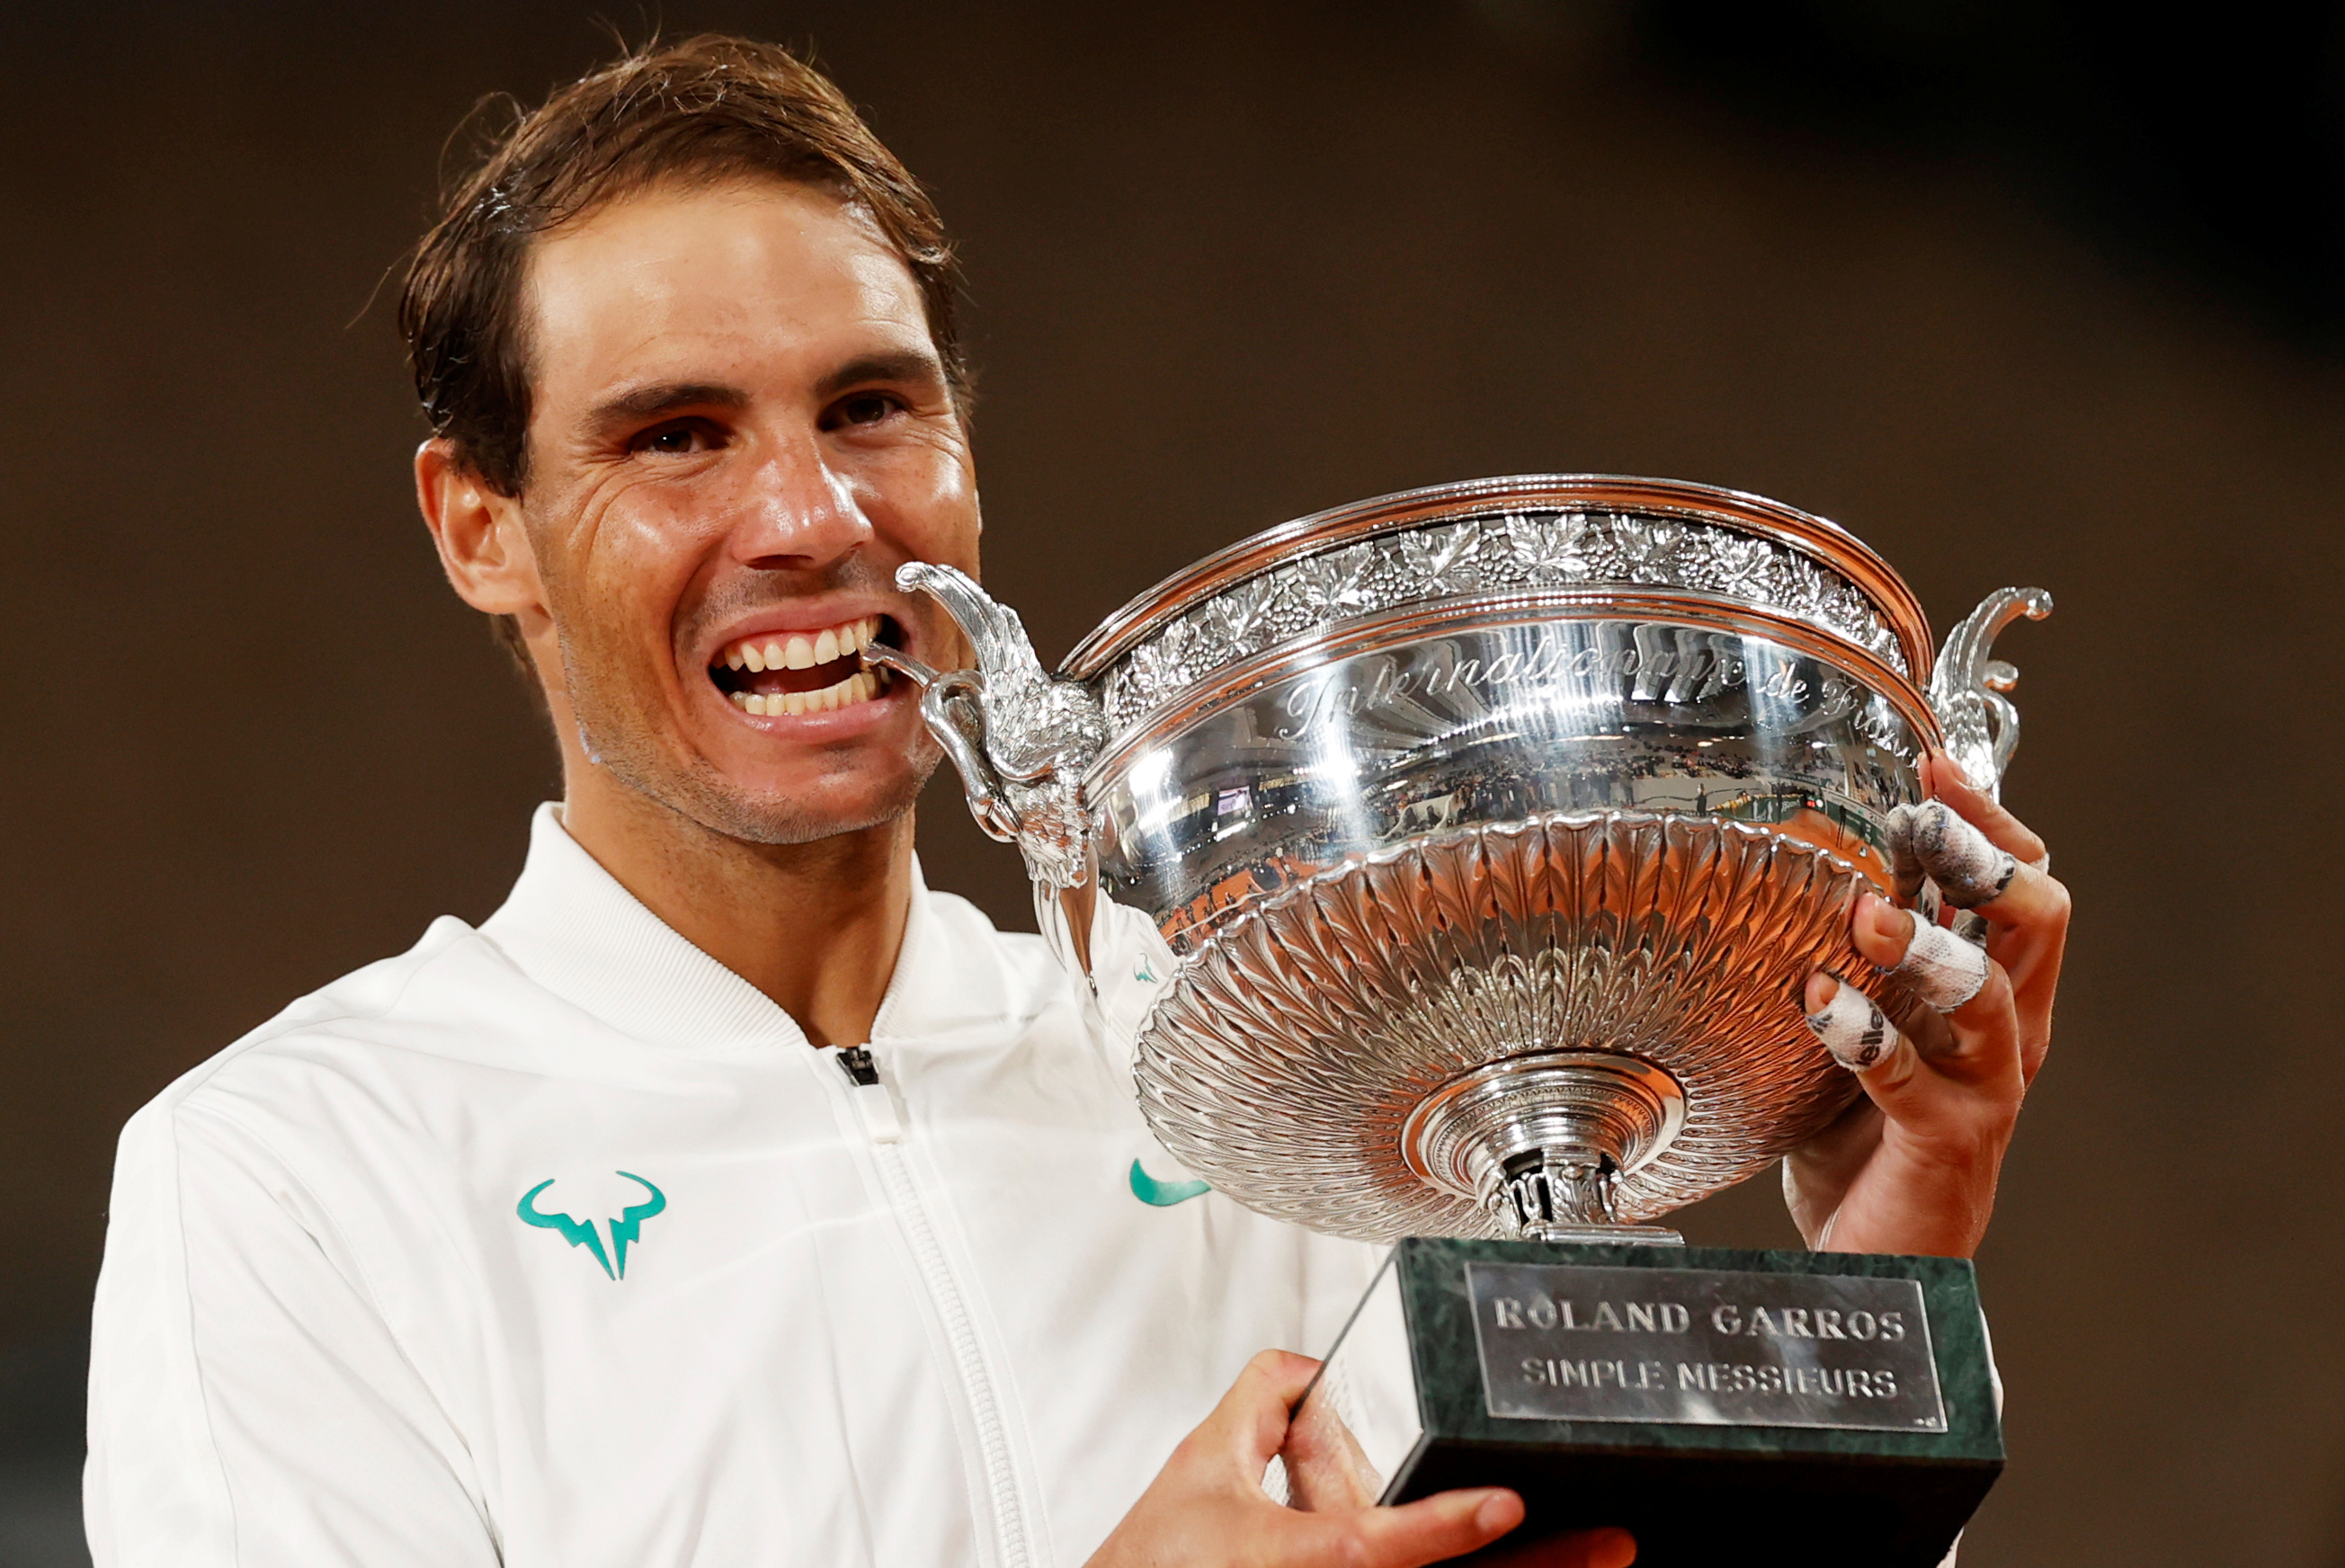 Spainu2019s Rafael Nadal celebrates with the trophy after winning the French Open final against Serbiau2019s Novak Djokovic. Photo: Reuters